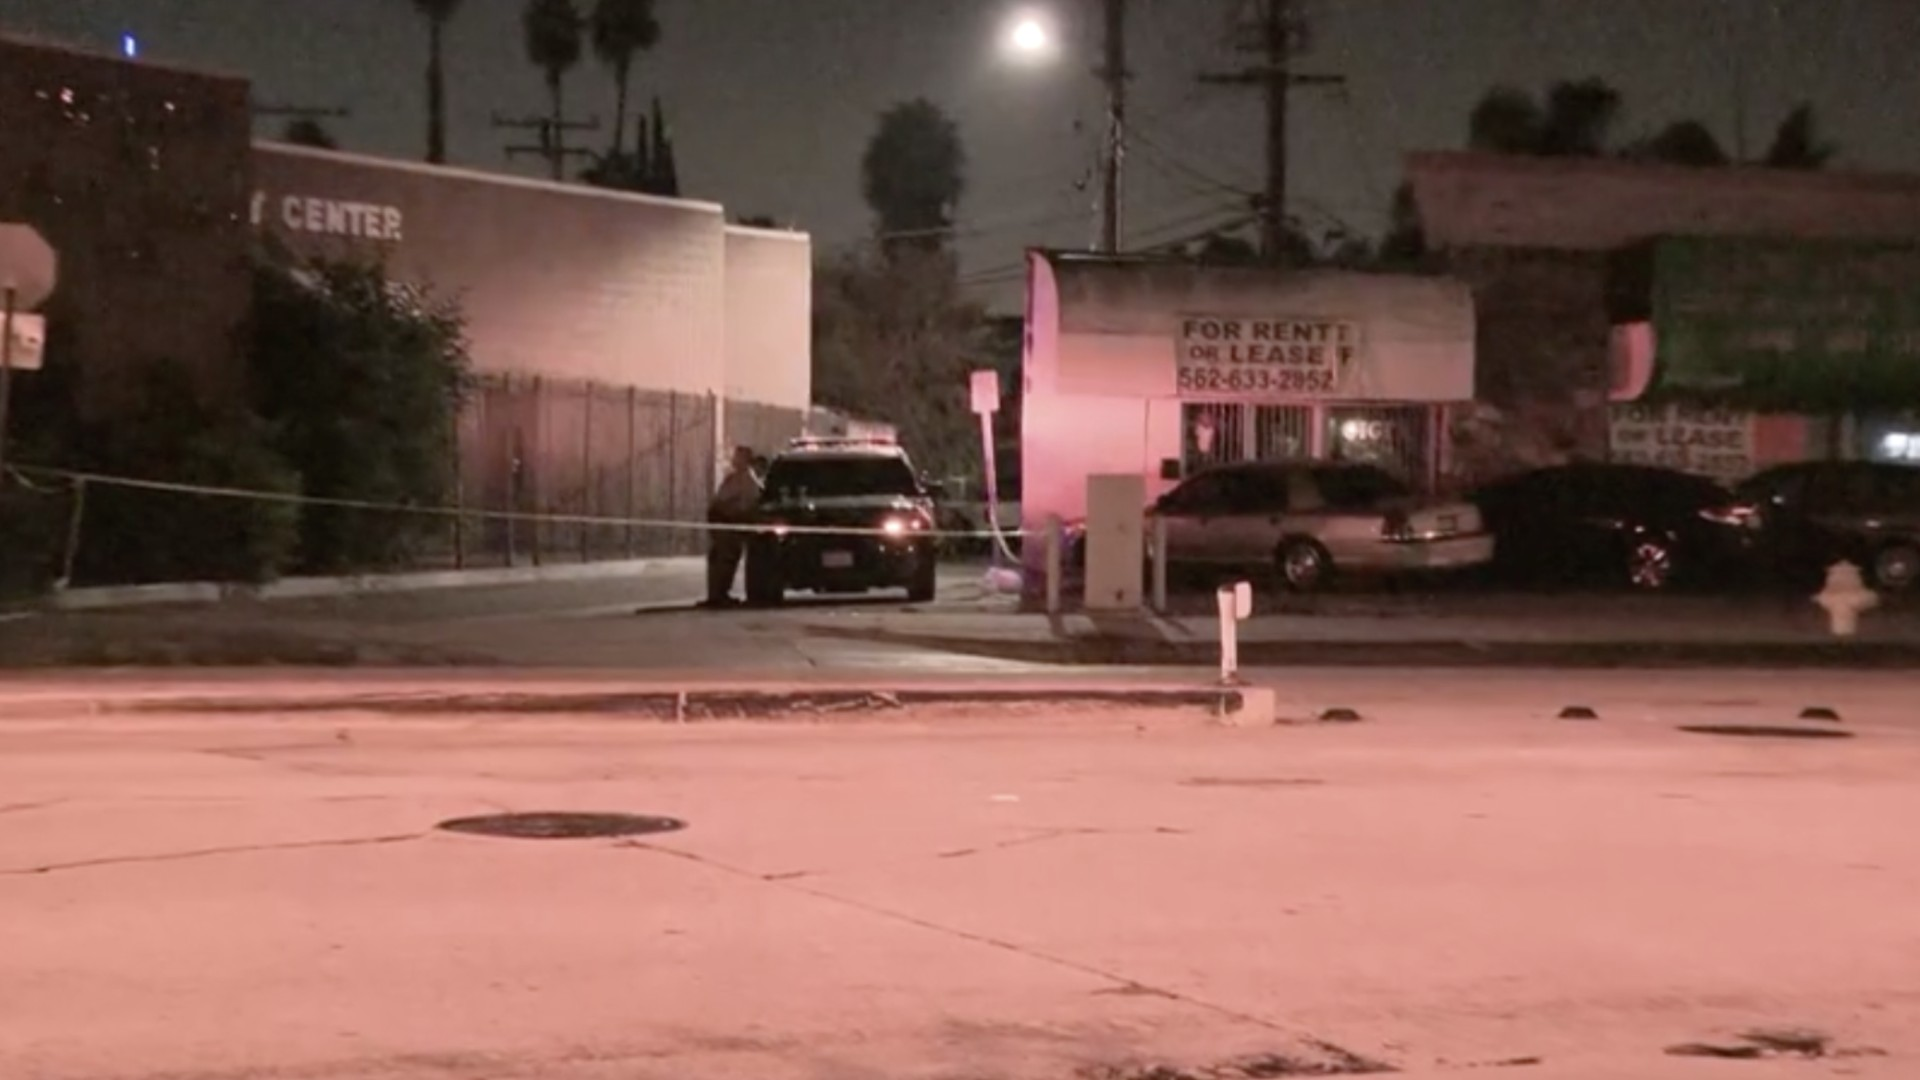 Police investigate a deadly shooting in Lynwood on Sept. 23, 2020. (KTLA)